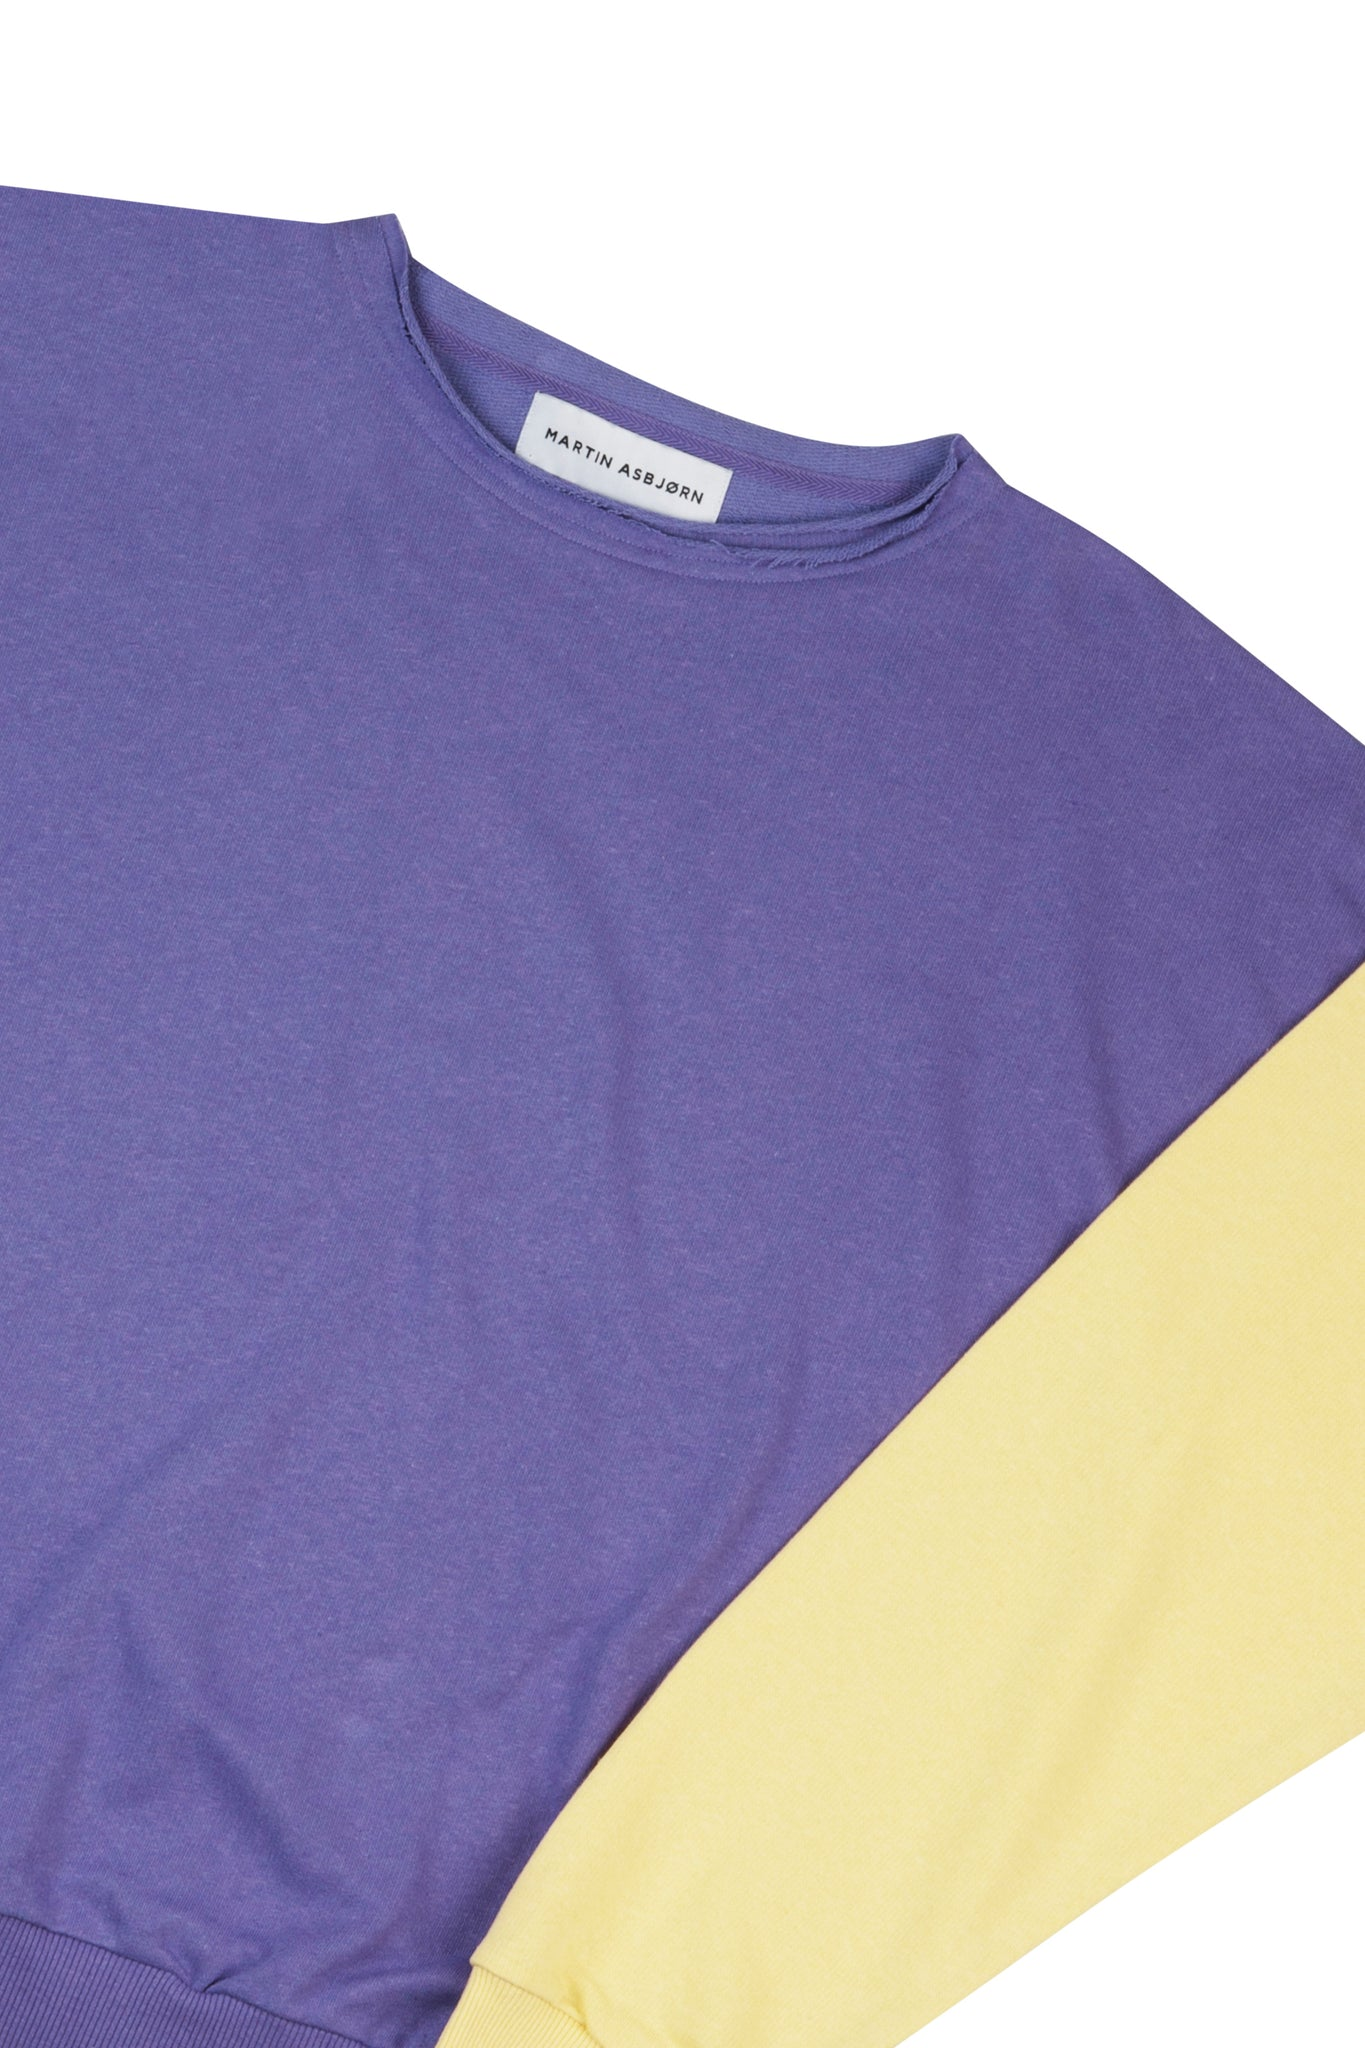 Julian Oversized Jersey Sweatshirt in Lilac/Banana Yellow form Danish Menswear Designer Martin Asbjørn